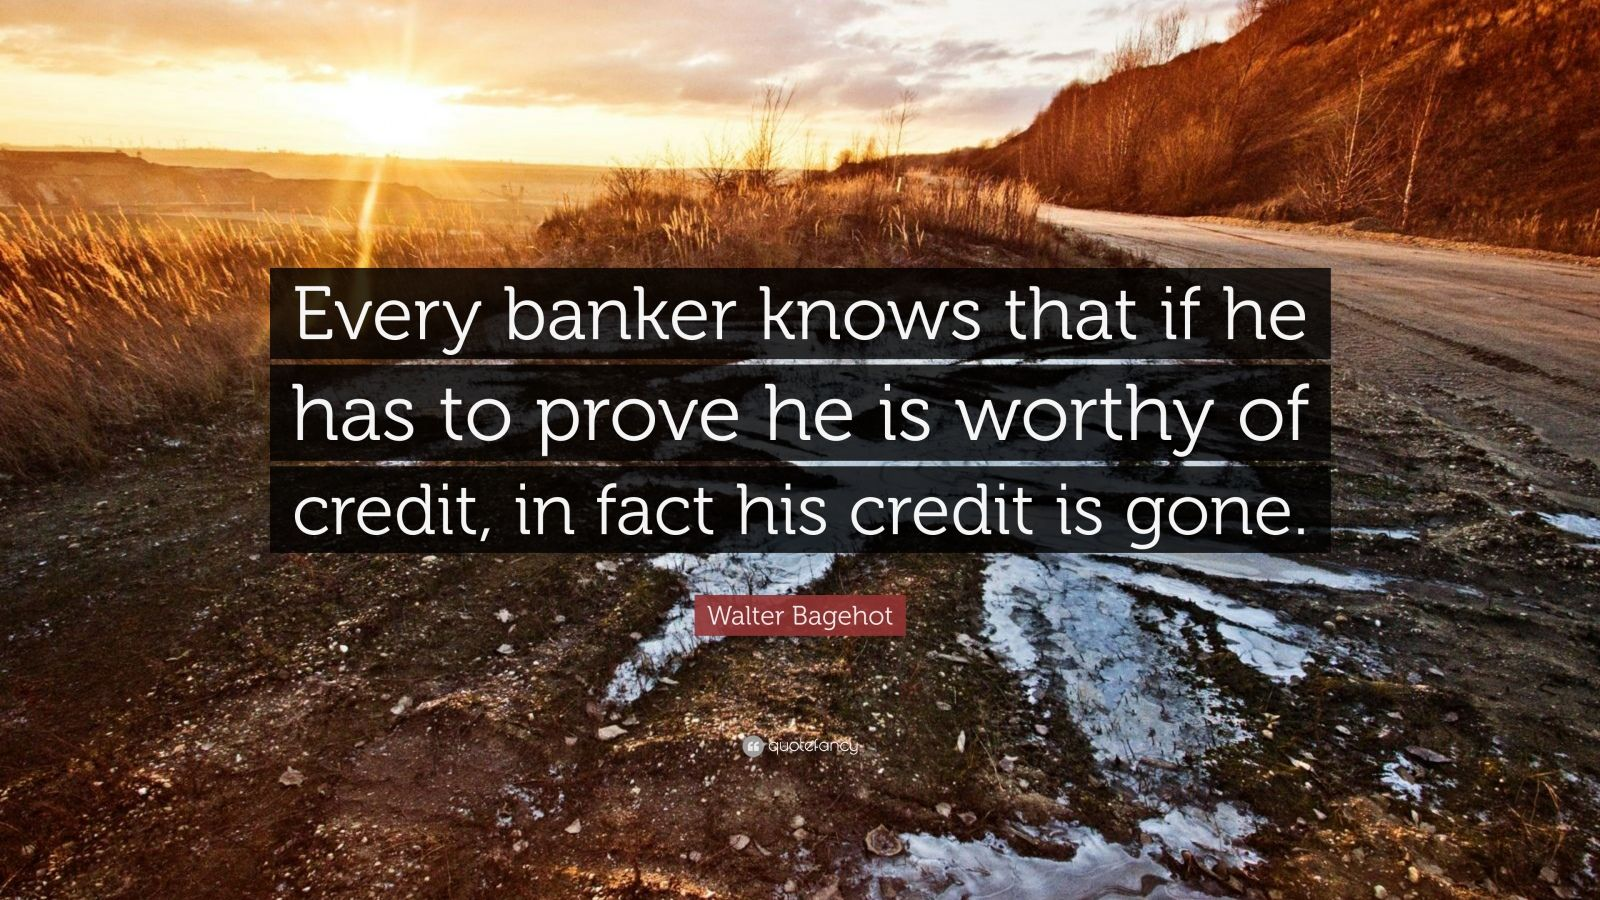 """Walter Bagehot Quote: """"Every banker knows that if he has to prove he is worthy of credit, in fact his credit is gone."""""""